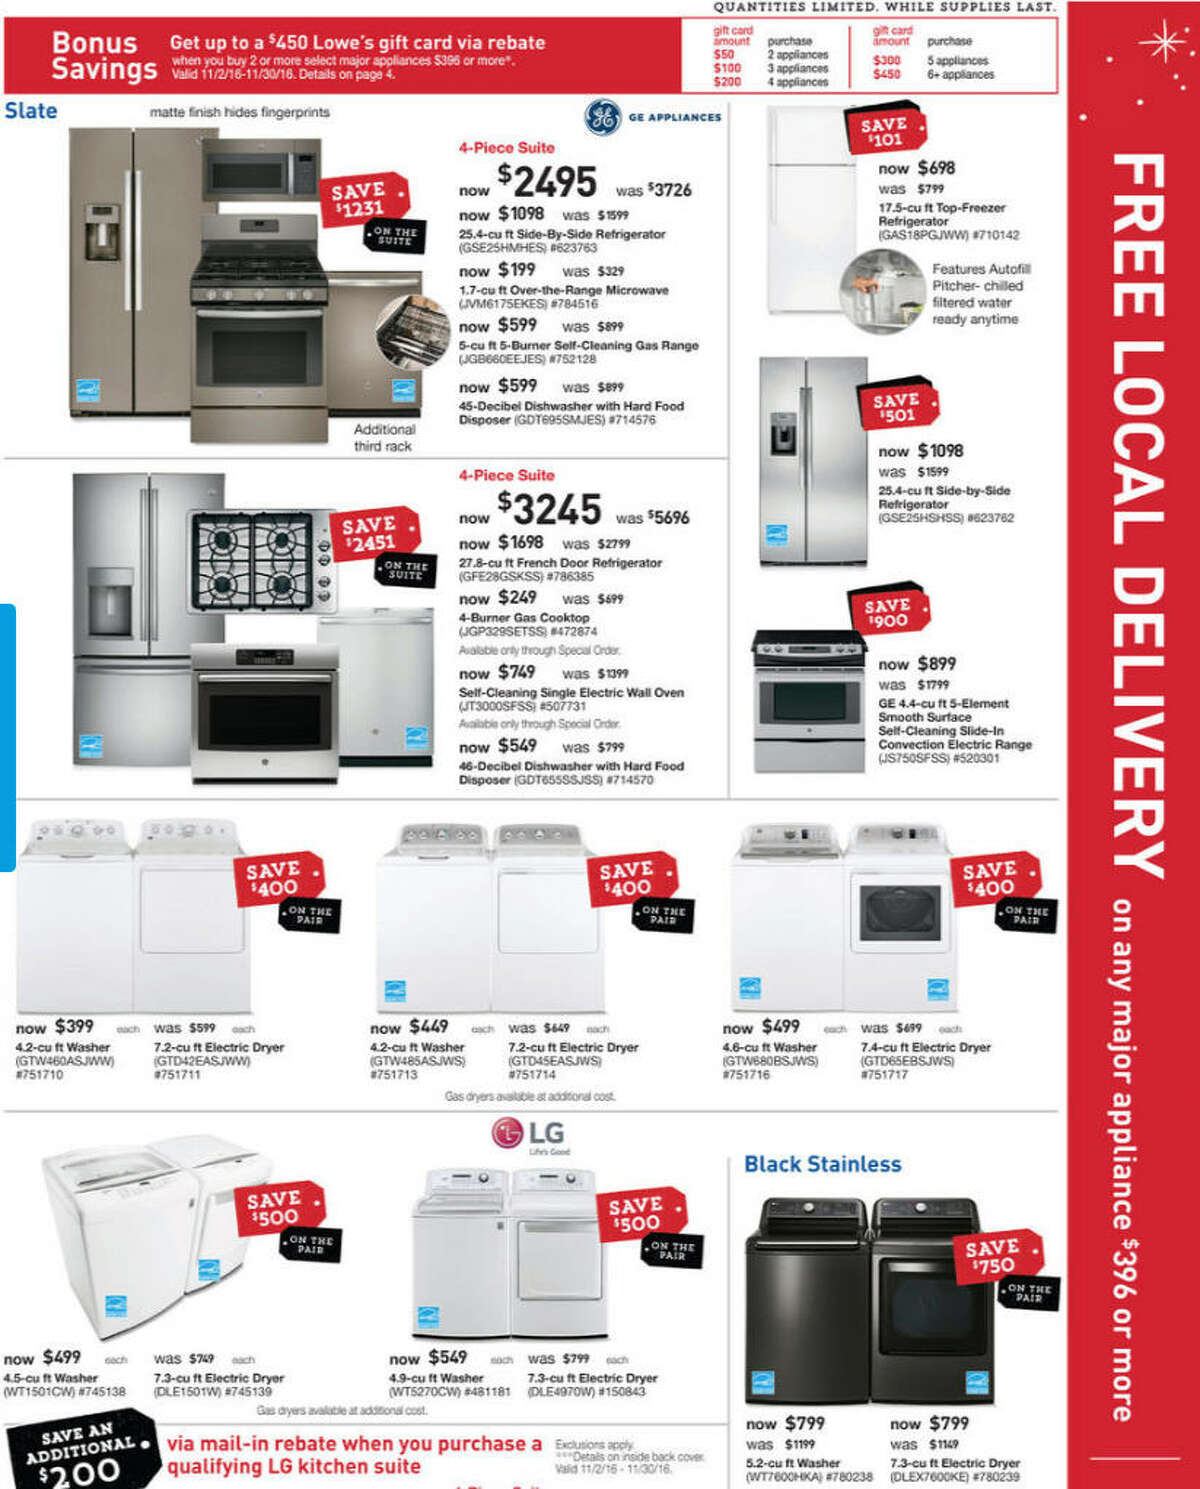 Appliances: $300 off Frigidaire side-by-side refrigerator (marked down to $698 from $998). $100 off Hotpoint washer (marked down to $299 from $399).